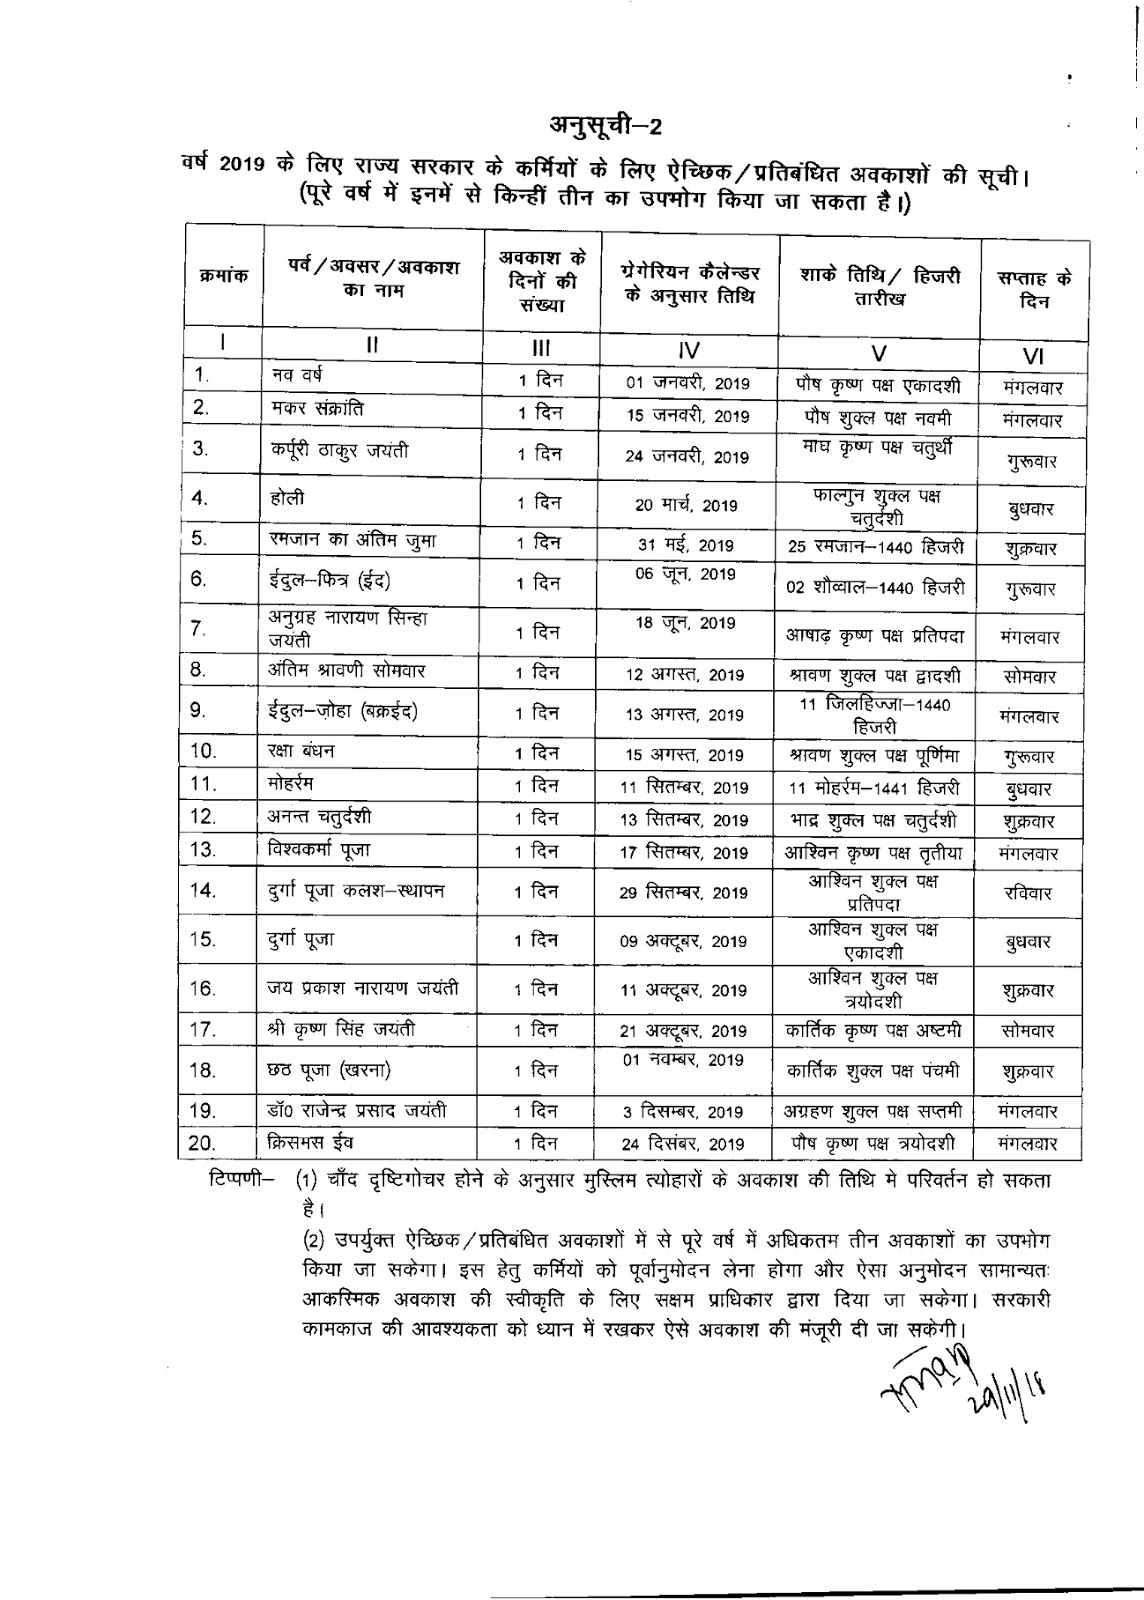 Bihar Government Calendar 2019 #educratsweb pertaining to Bihar Sarkar Calendra 2020